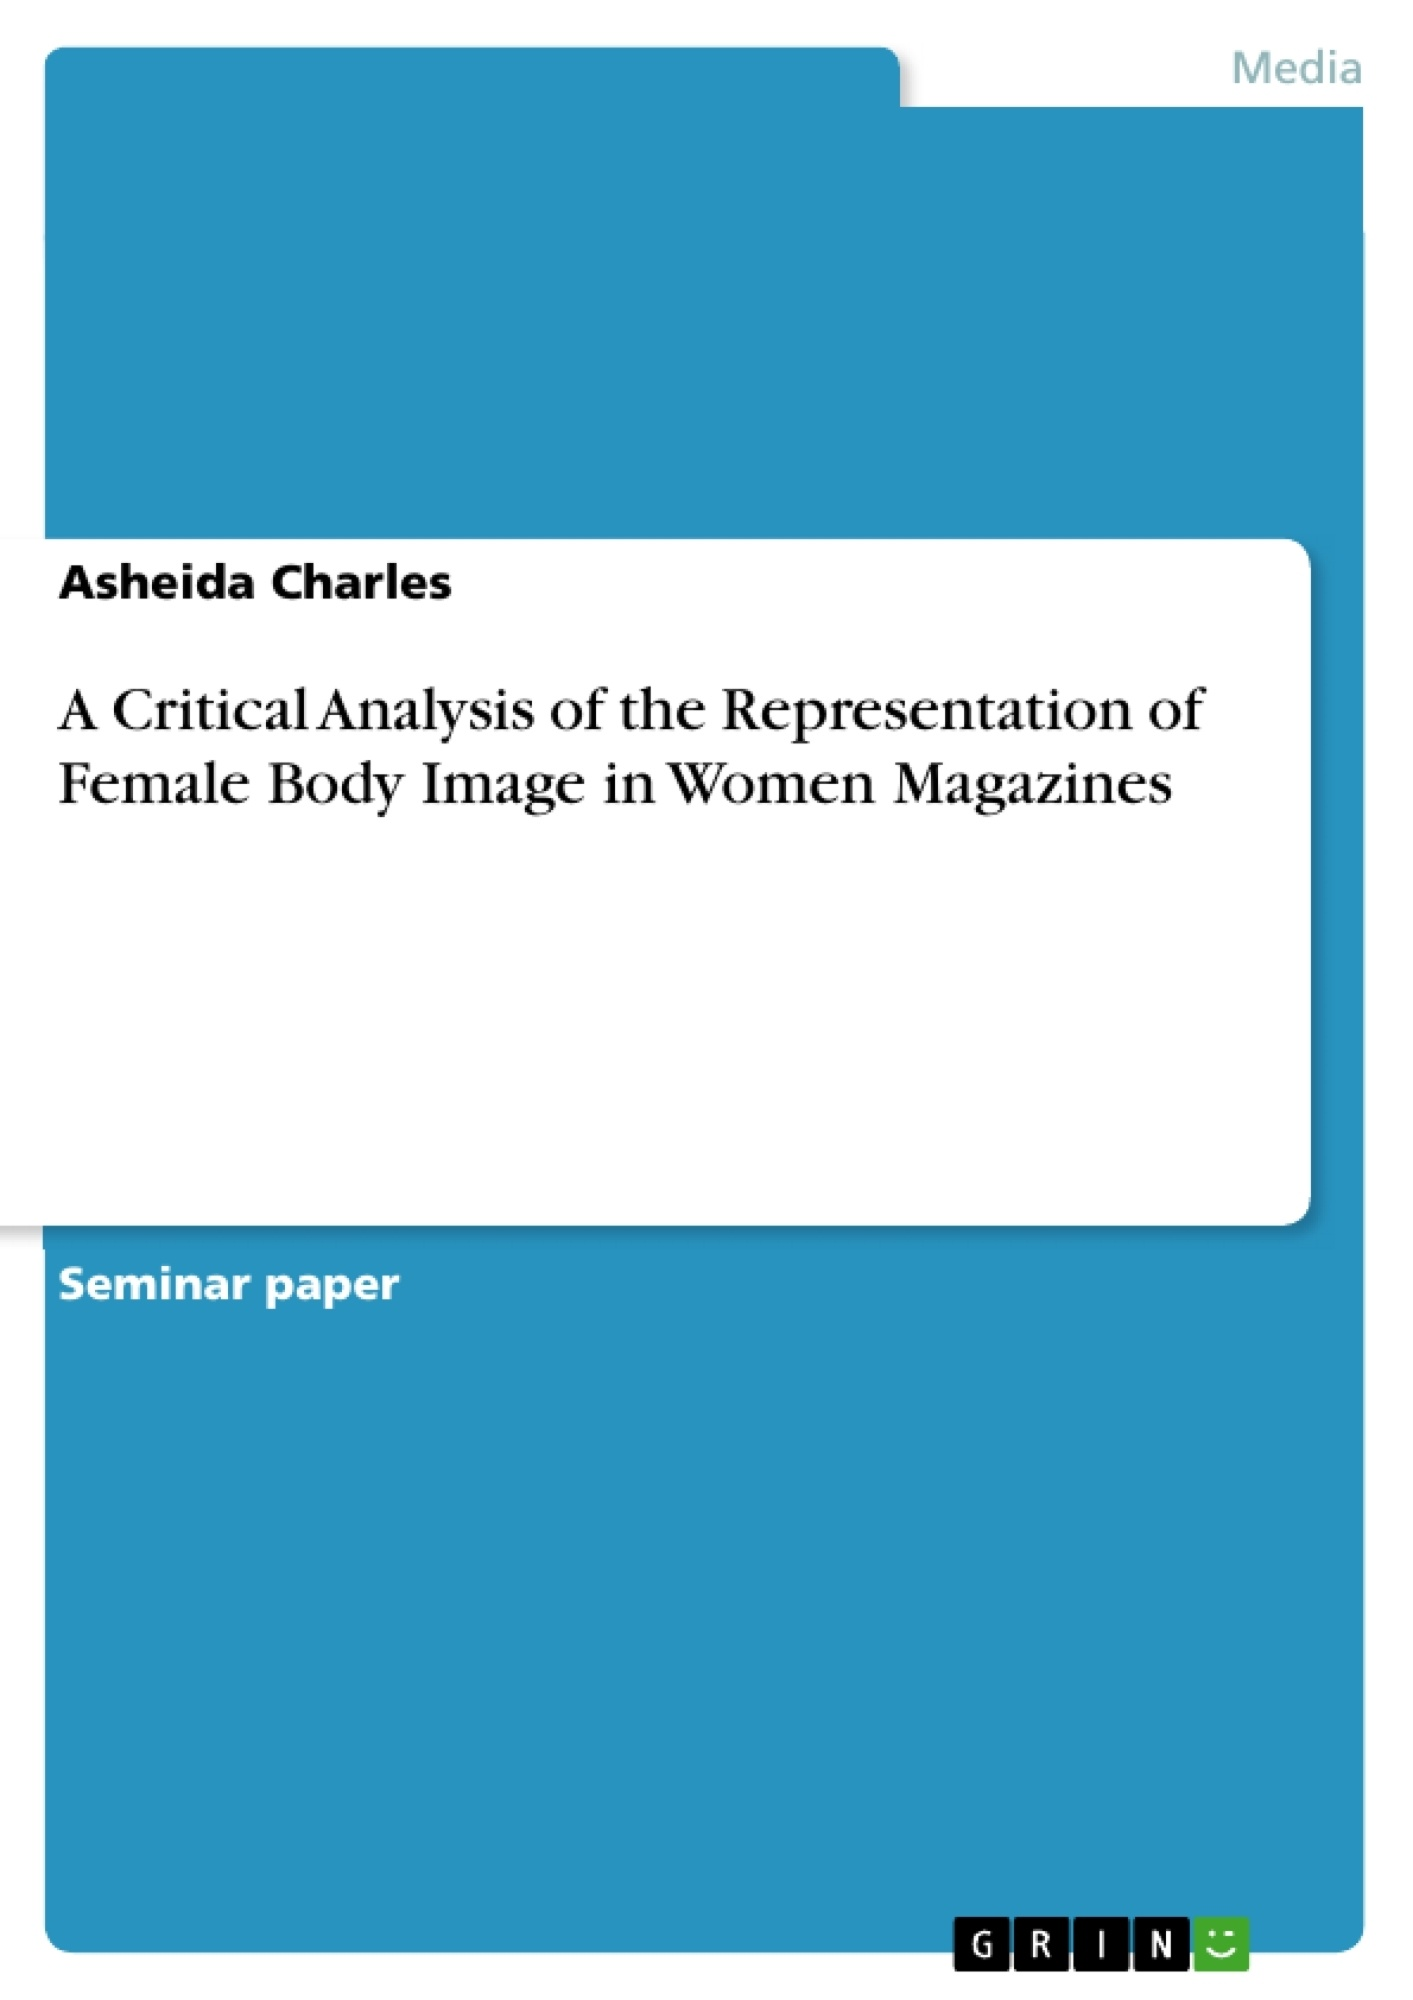 Title: A Critical Analysis of the Representation of Female Body Image in Women Magazines